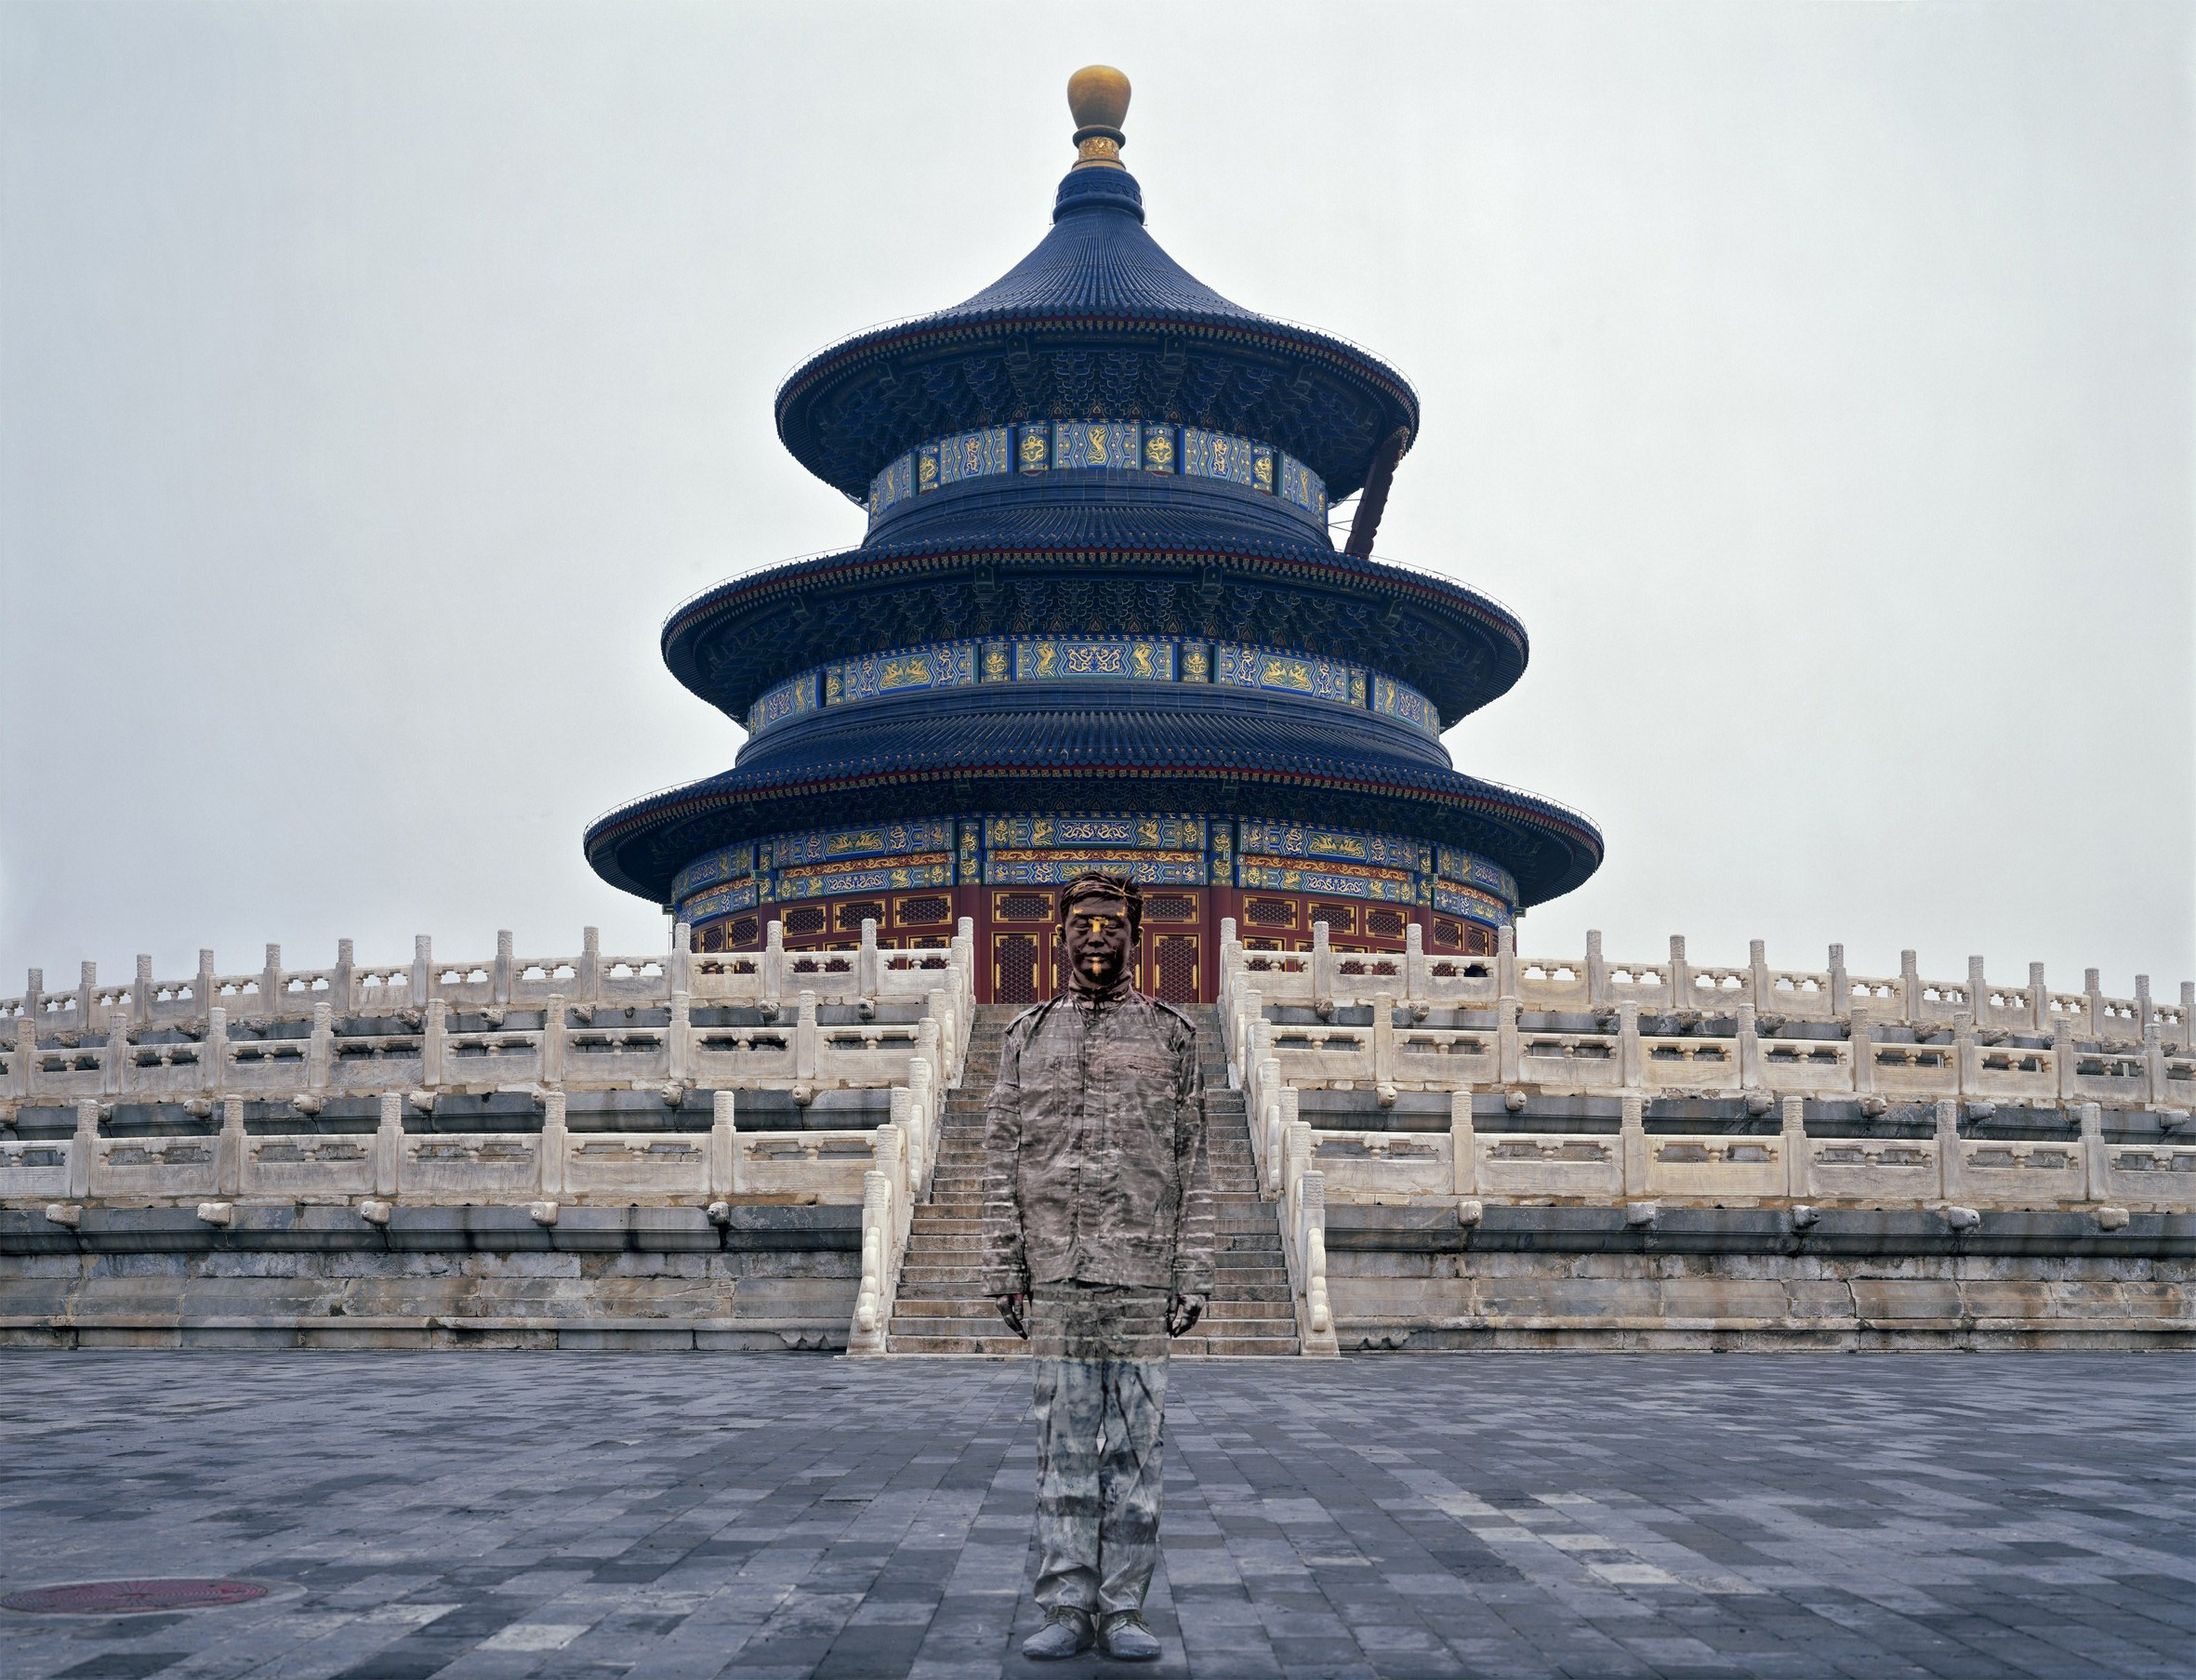 Hiding in the City No. 92—Temple of Heaven, 2010